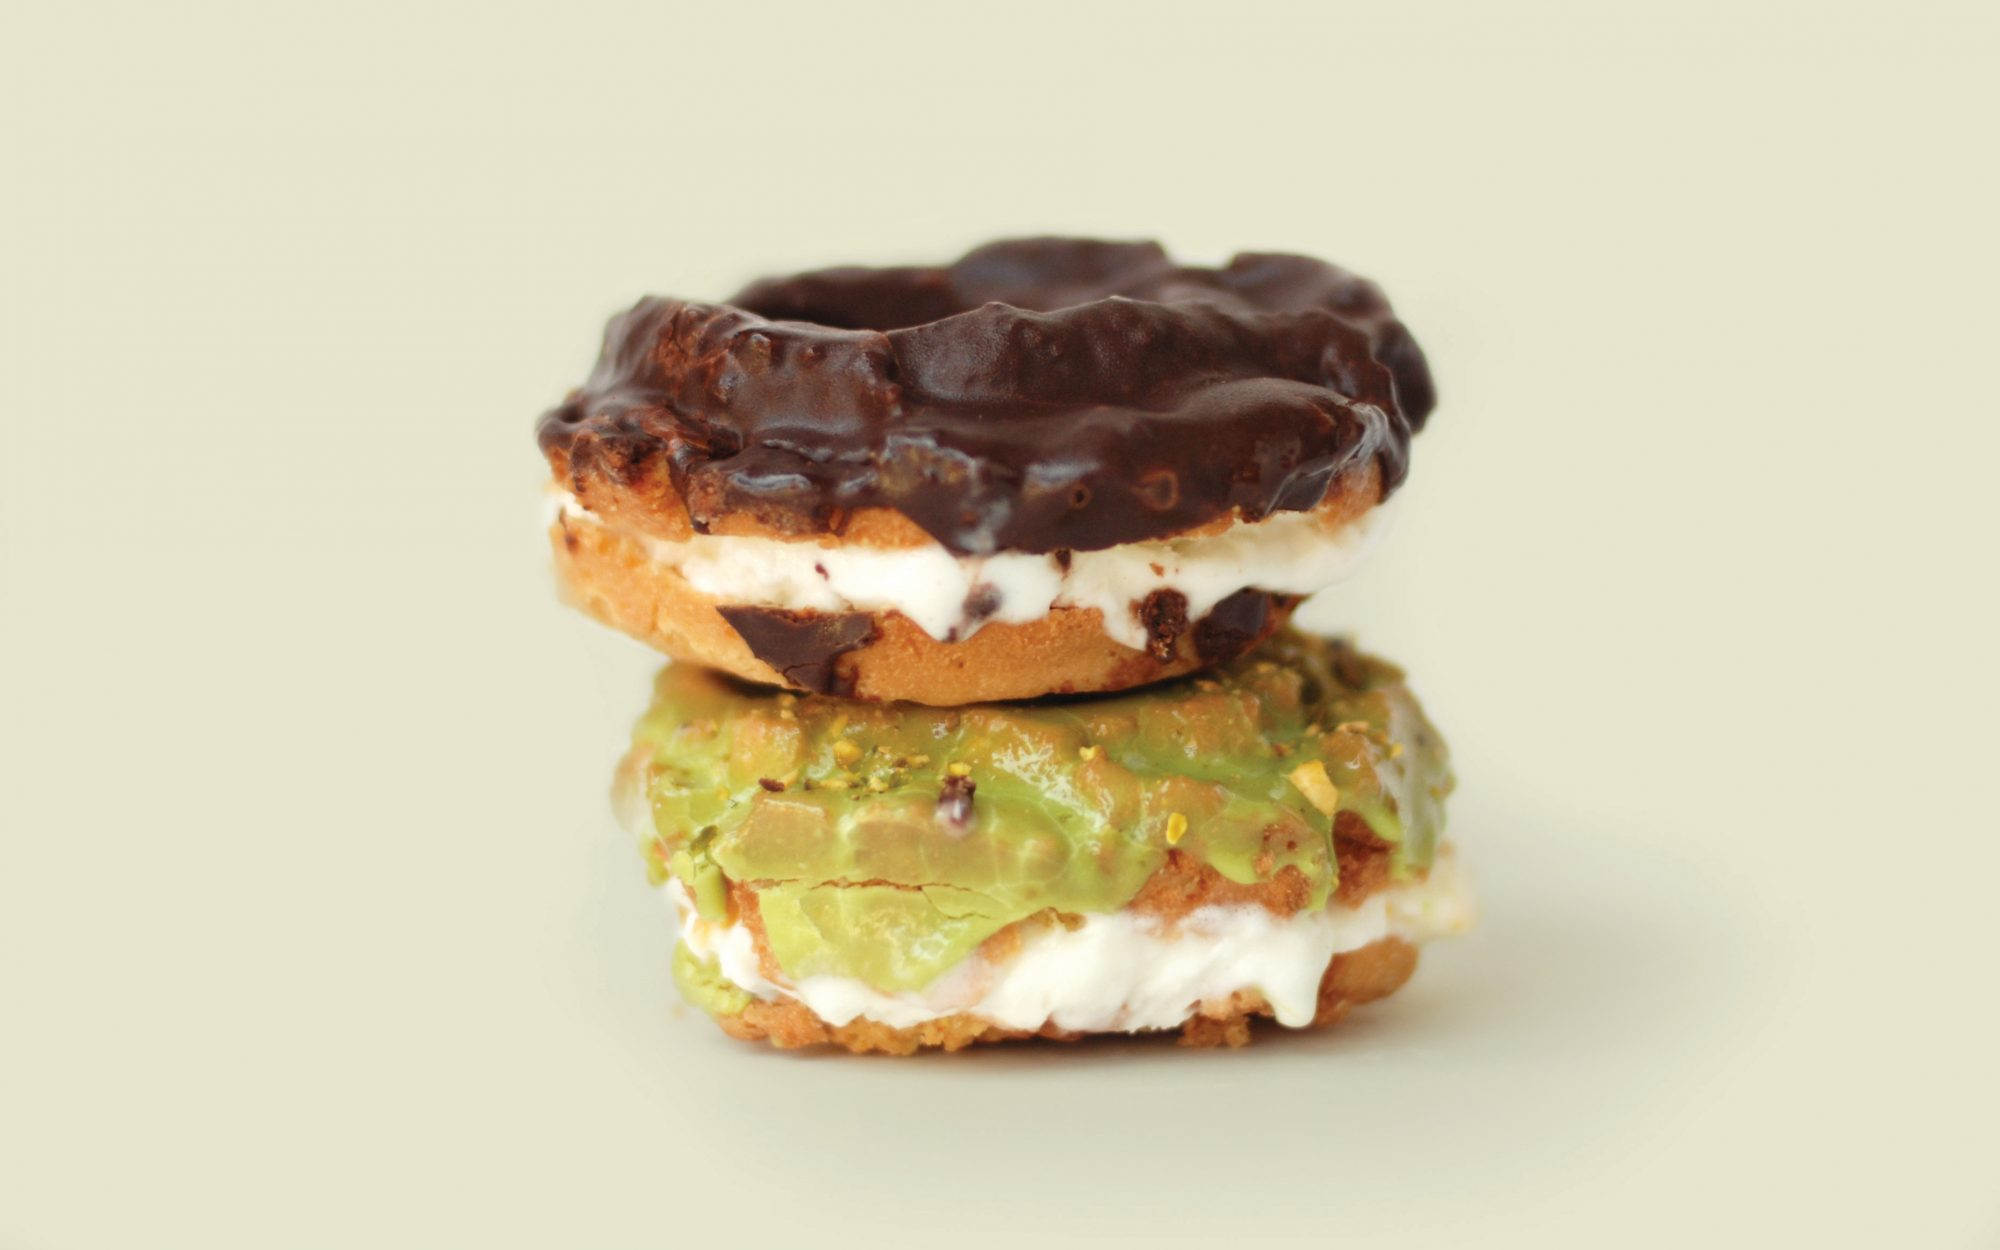 Outlandish Ice Cream Sandwiches to Eat This Summer: Stan's Donuts & Coffee in Chicago